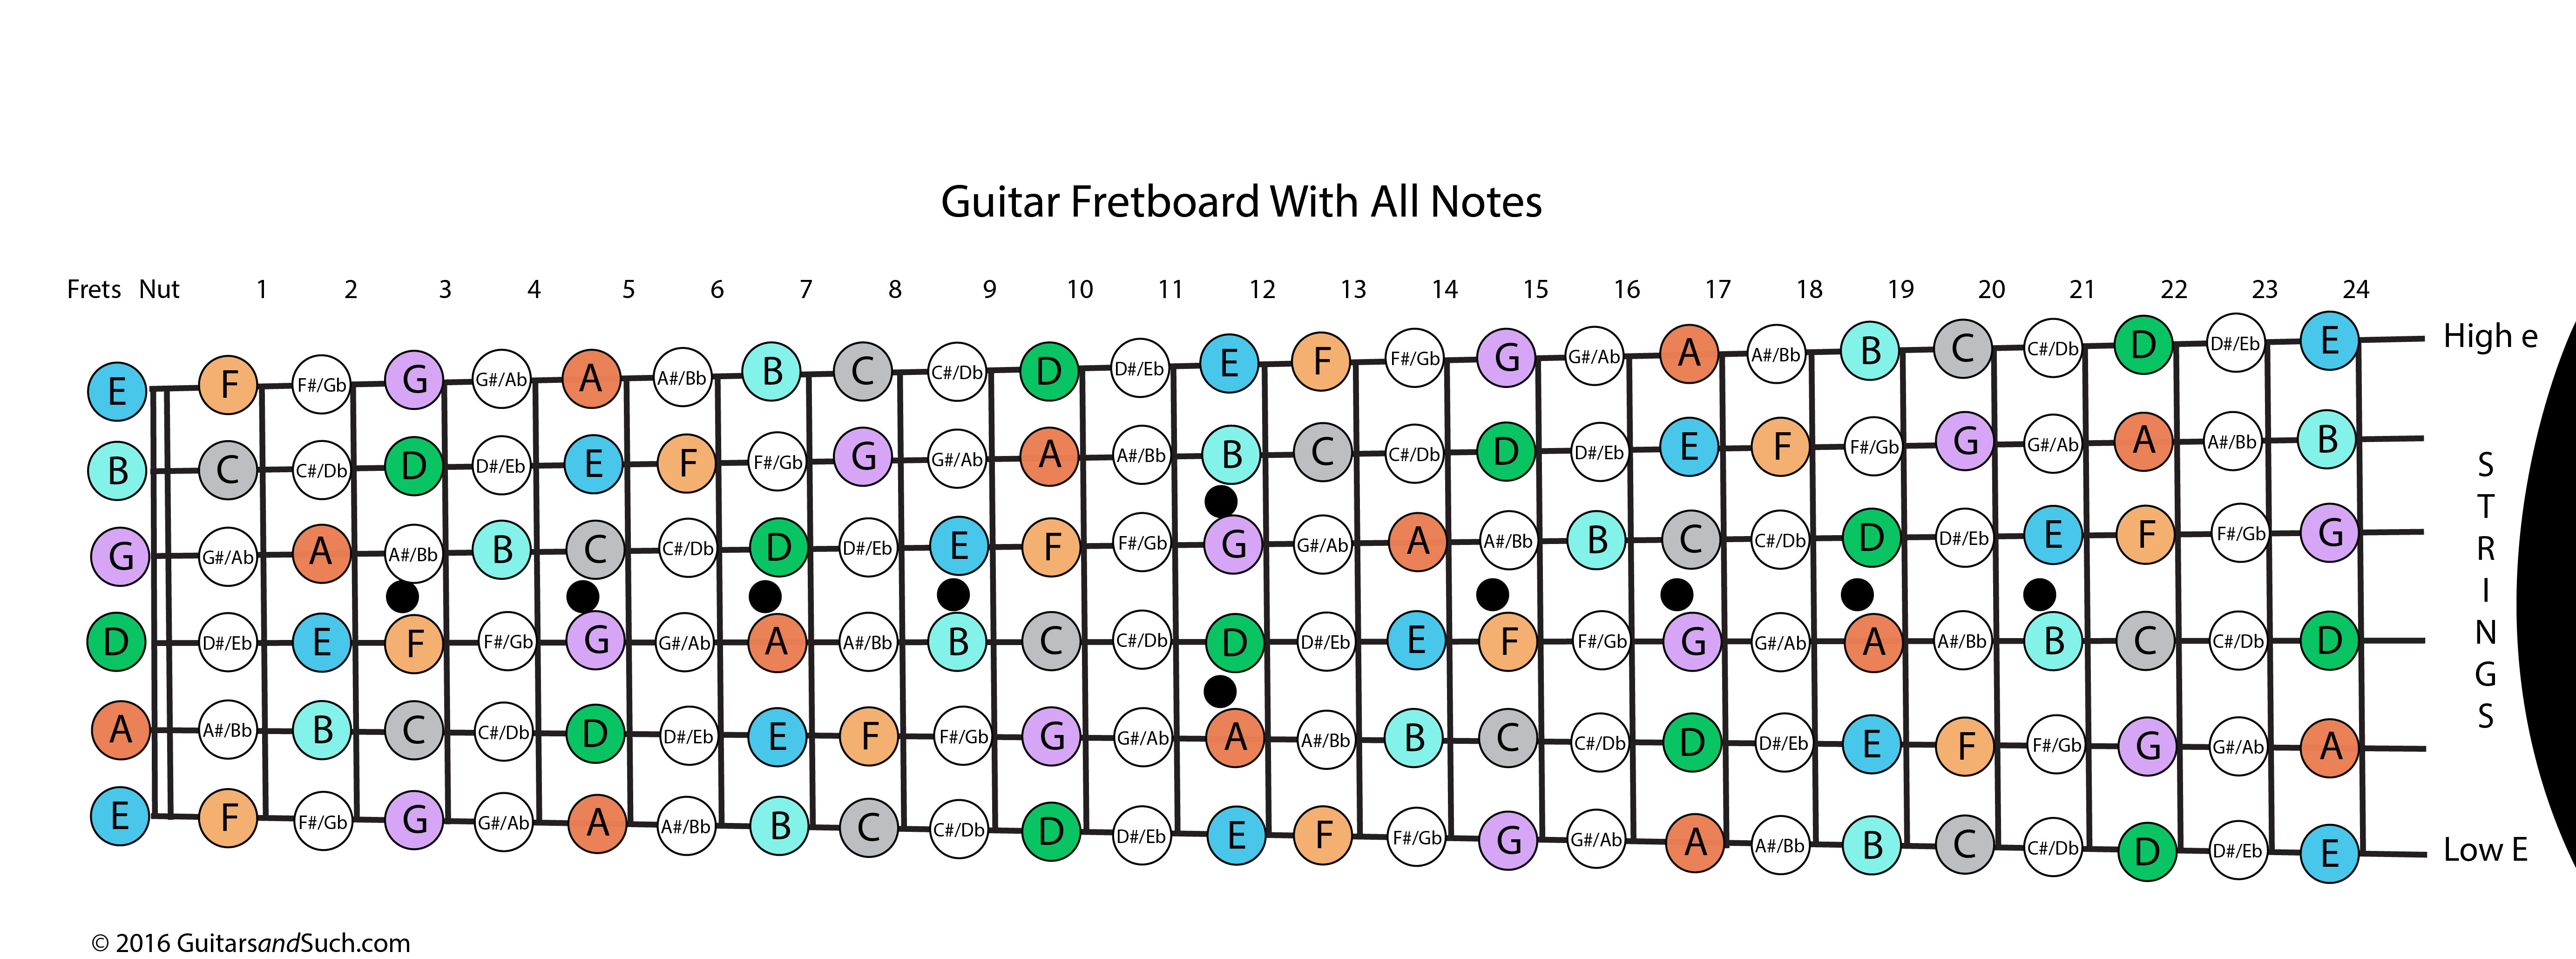 Diagram blank guitar neck diagram toyota corolla engine diagram heating guitar note chart barebearsbackyardco guitar fretboard with all notes color coded ai graphic guitar note chart ccuart Images